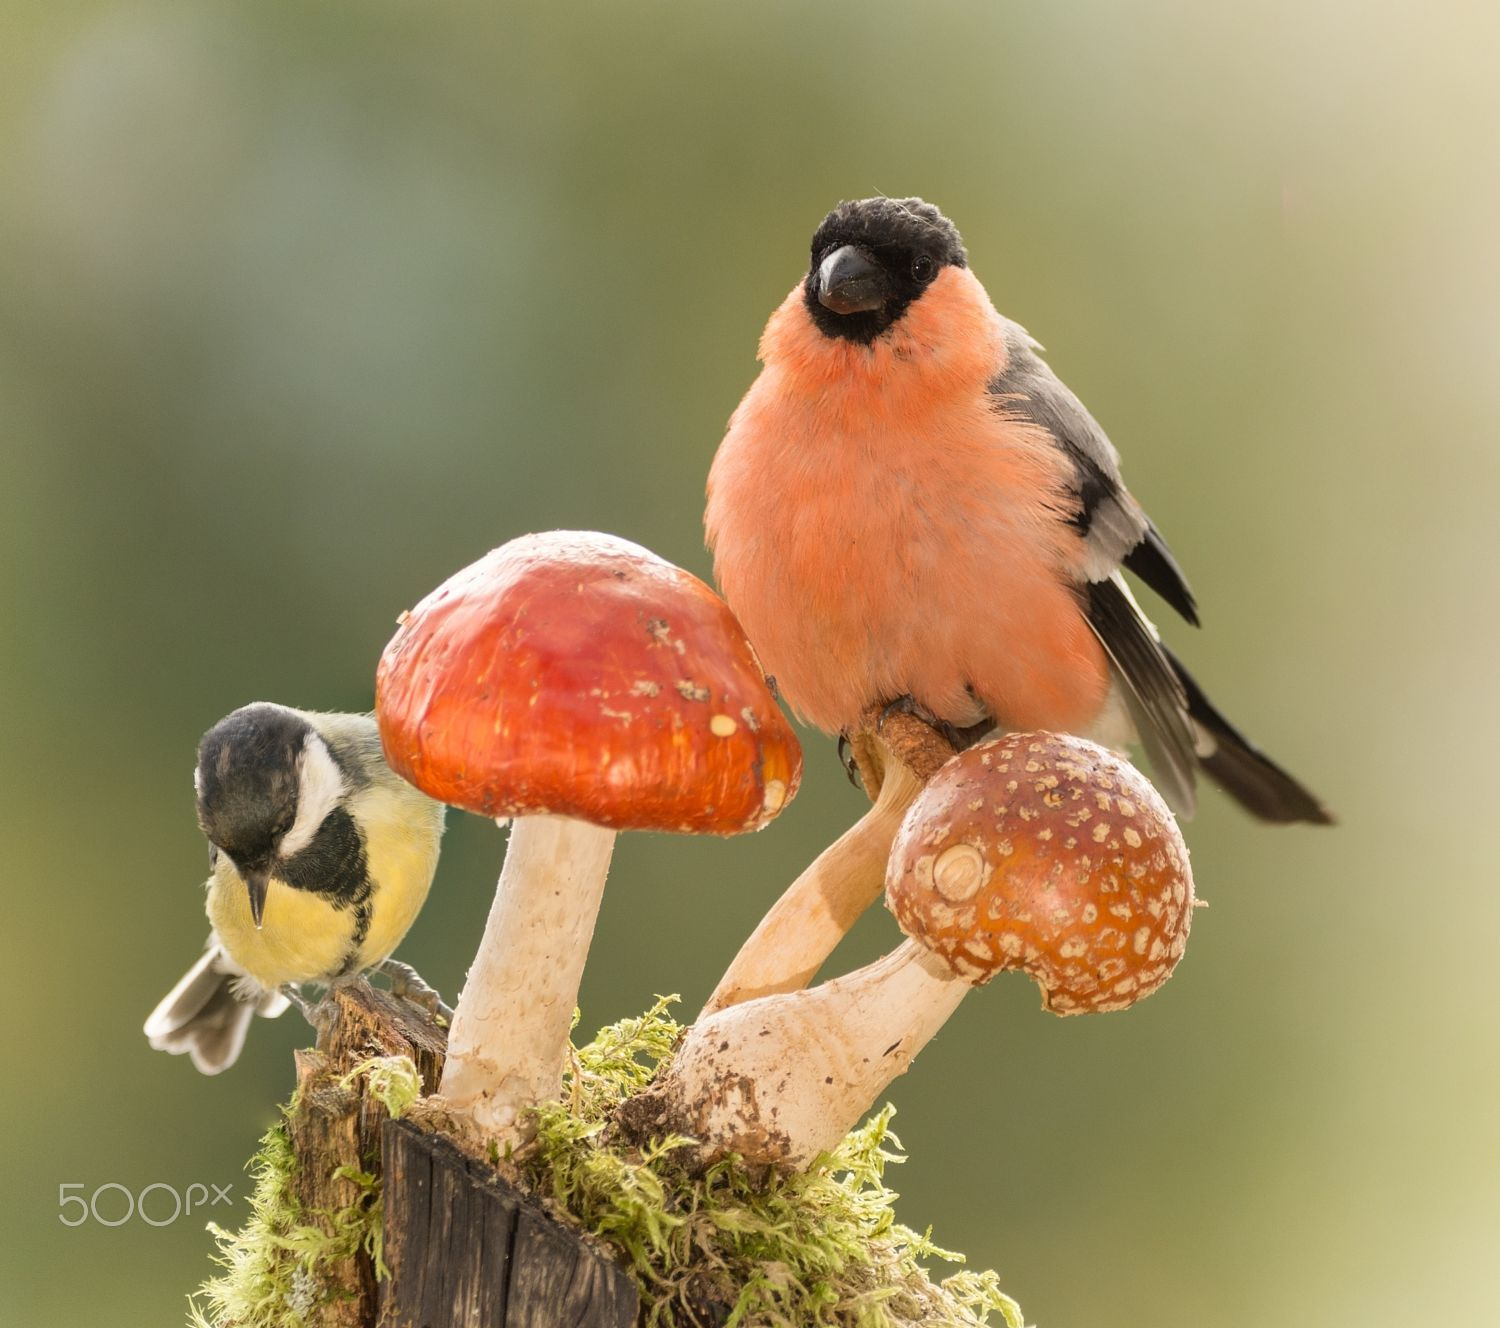 mushrooms match by Geert Weggen on 500px